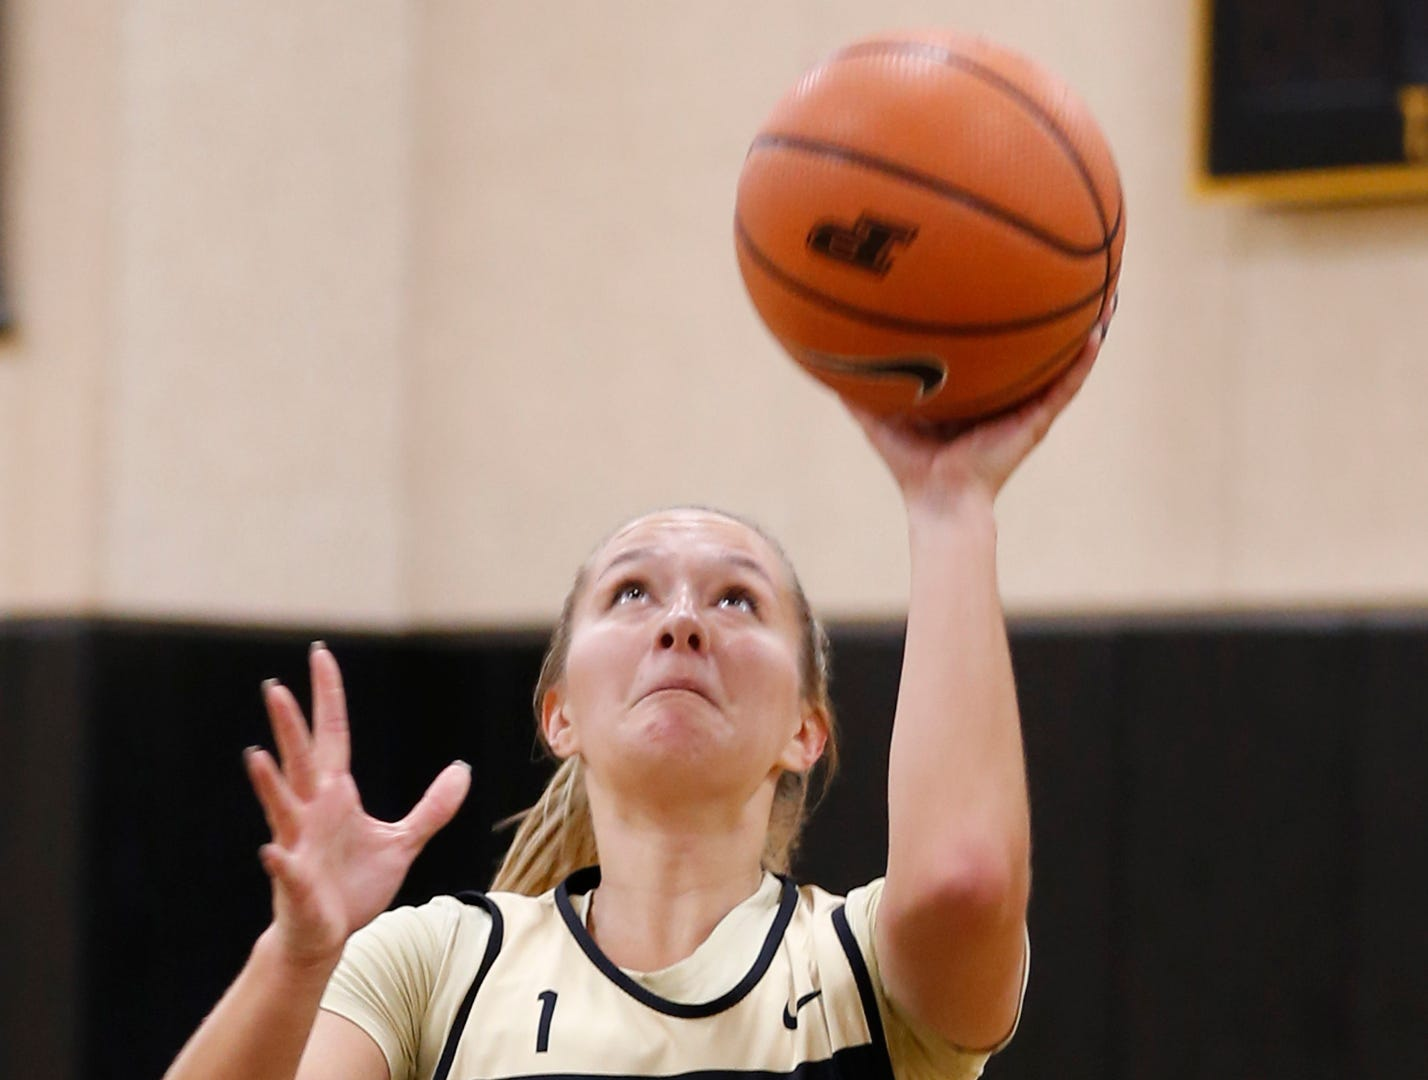 Karissa McLaughlin with a layup during practice for Purdue women's basketball Wednesday, September 26, 2018, at Cardinal Court in Mackey Arena.